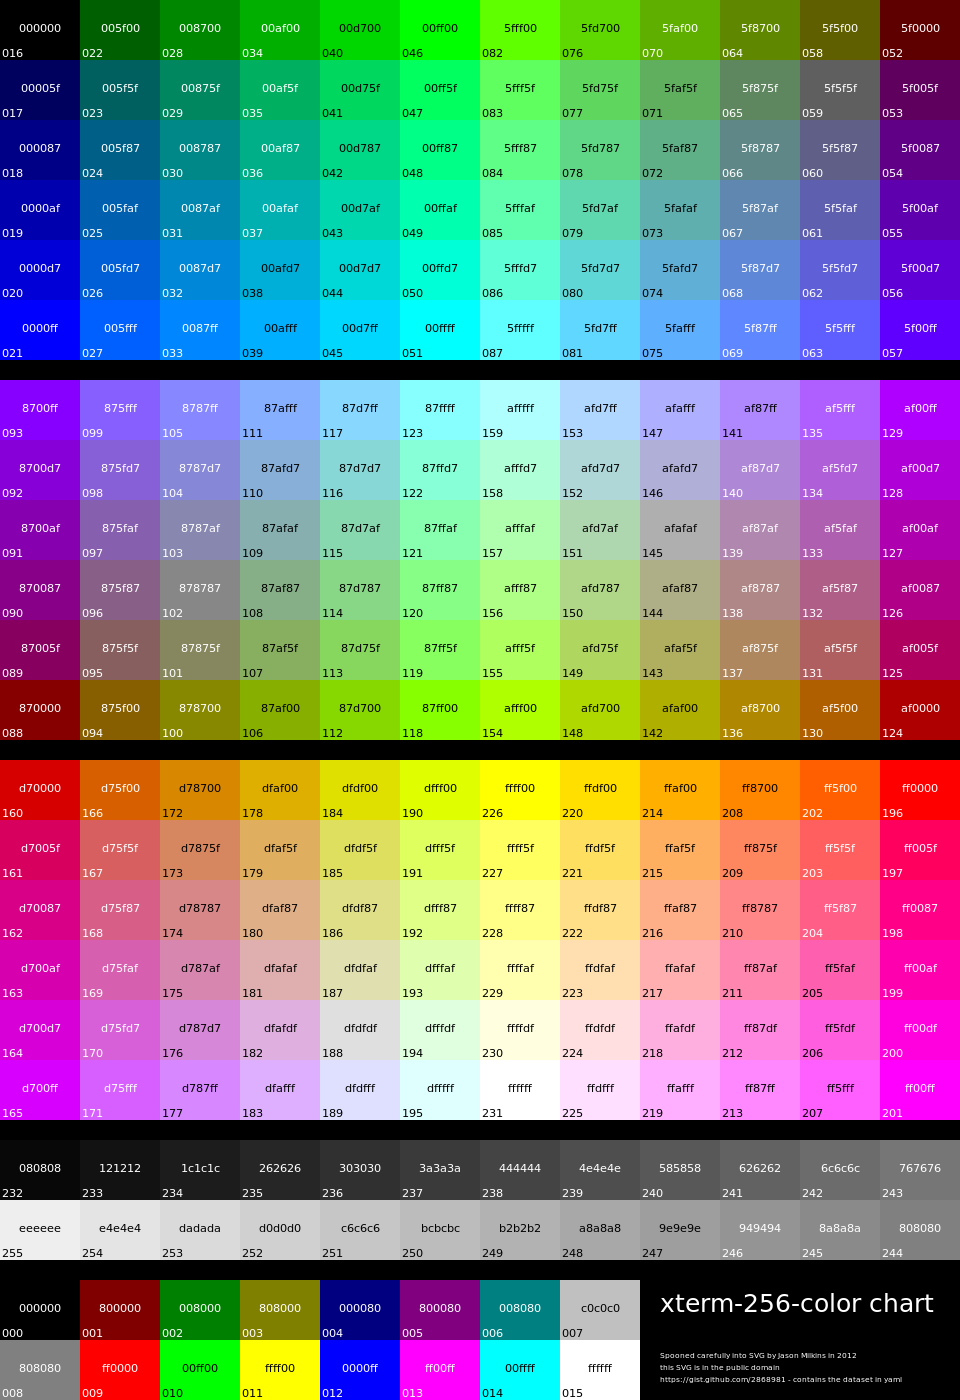 a reference image showing colored tiles and text with the color's corresponding bash color code